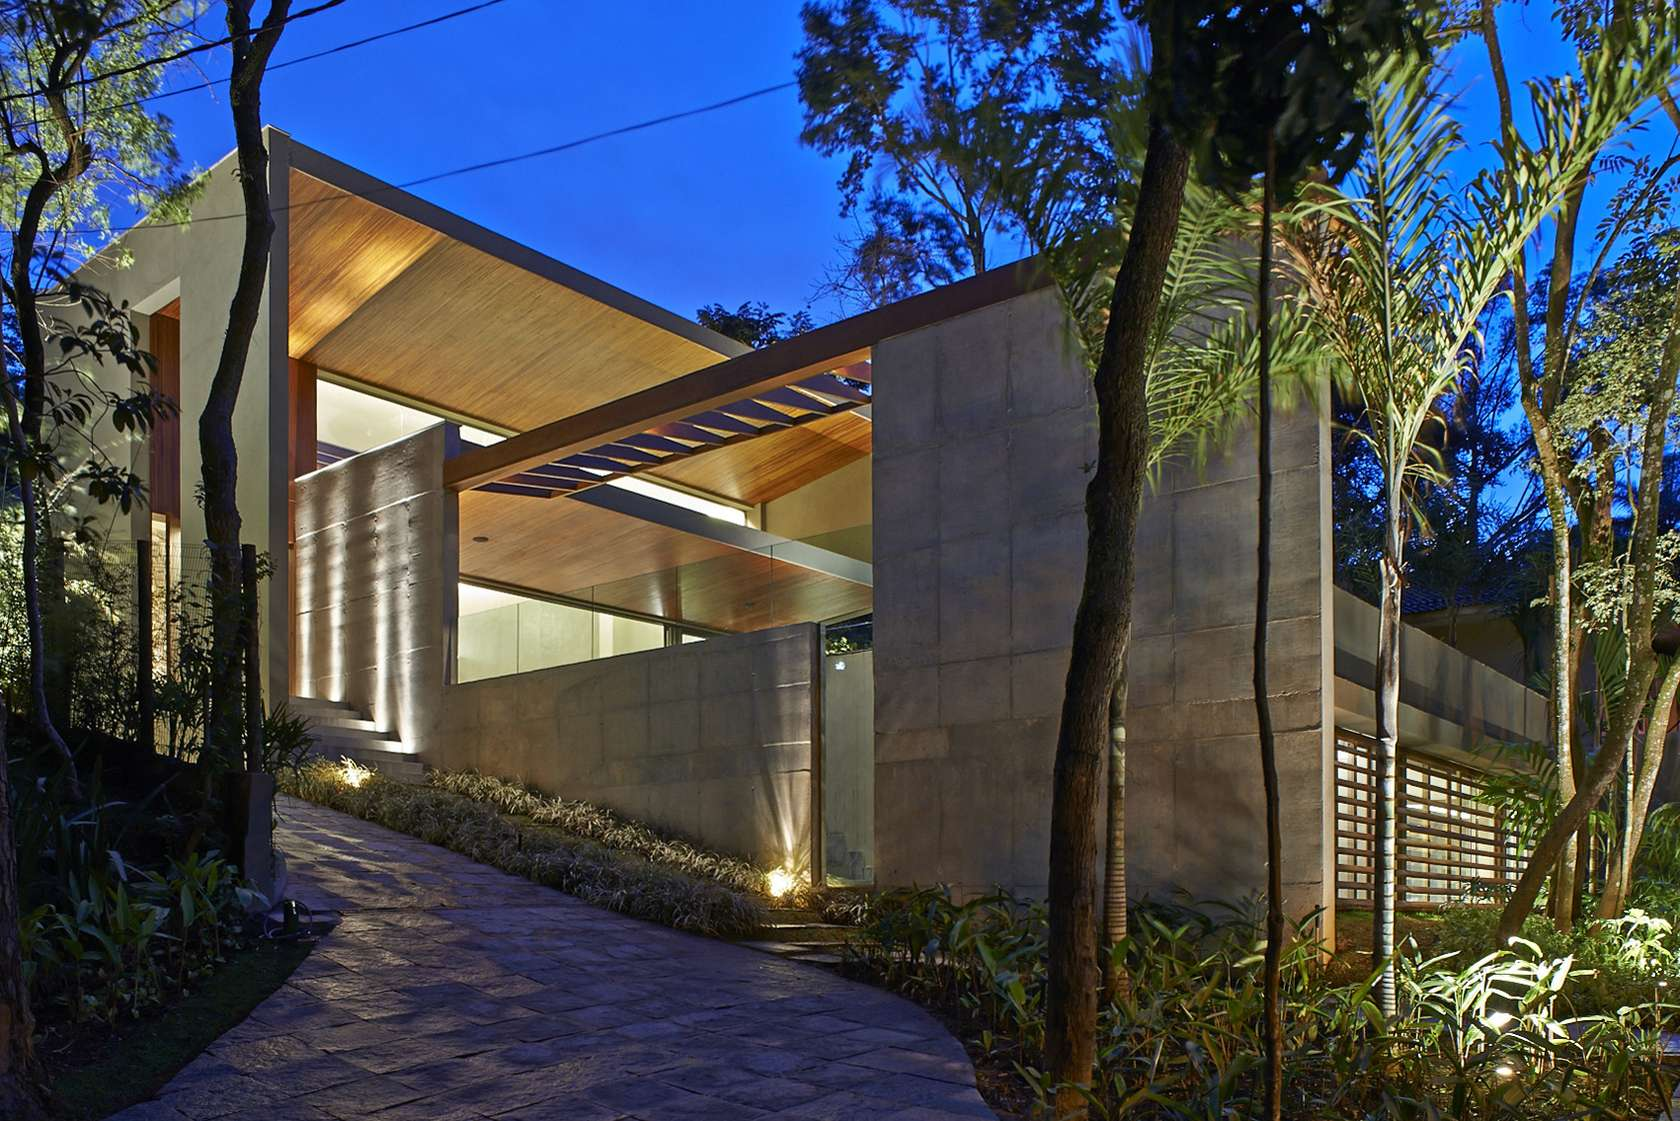 Luxurious Home Uses Wood and Stone Elements to Marry Interiors and ...